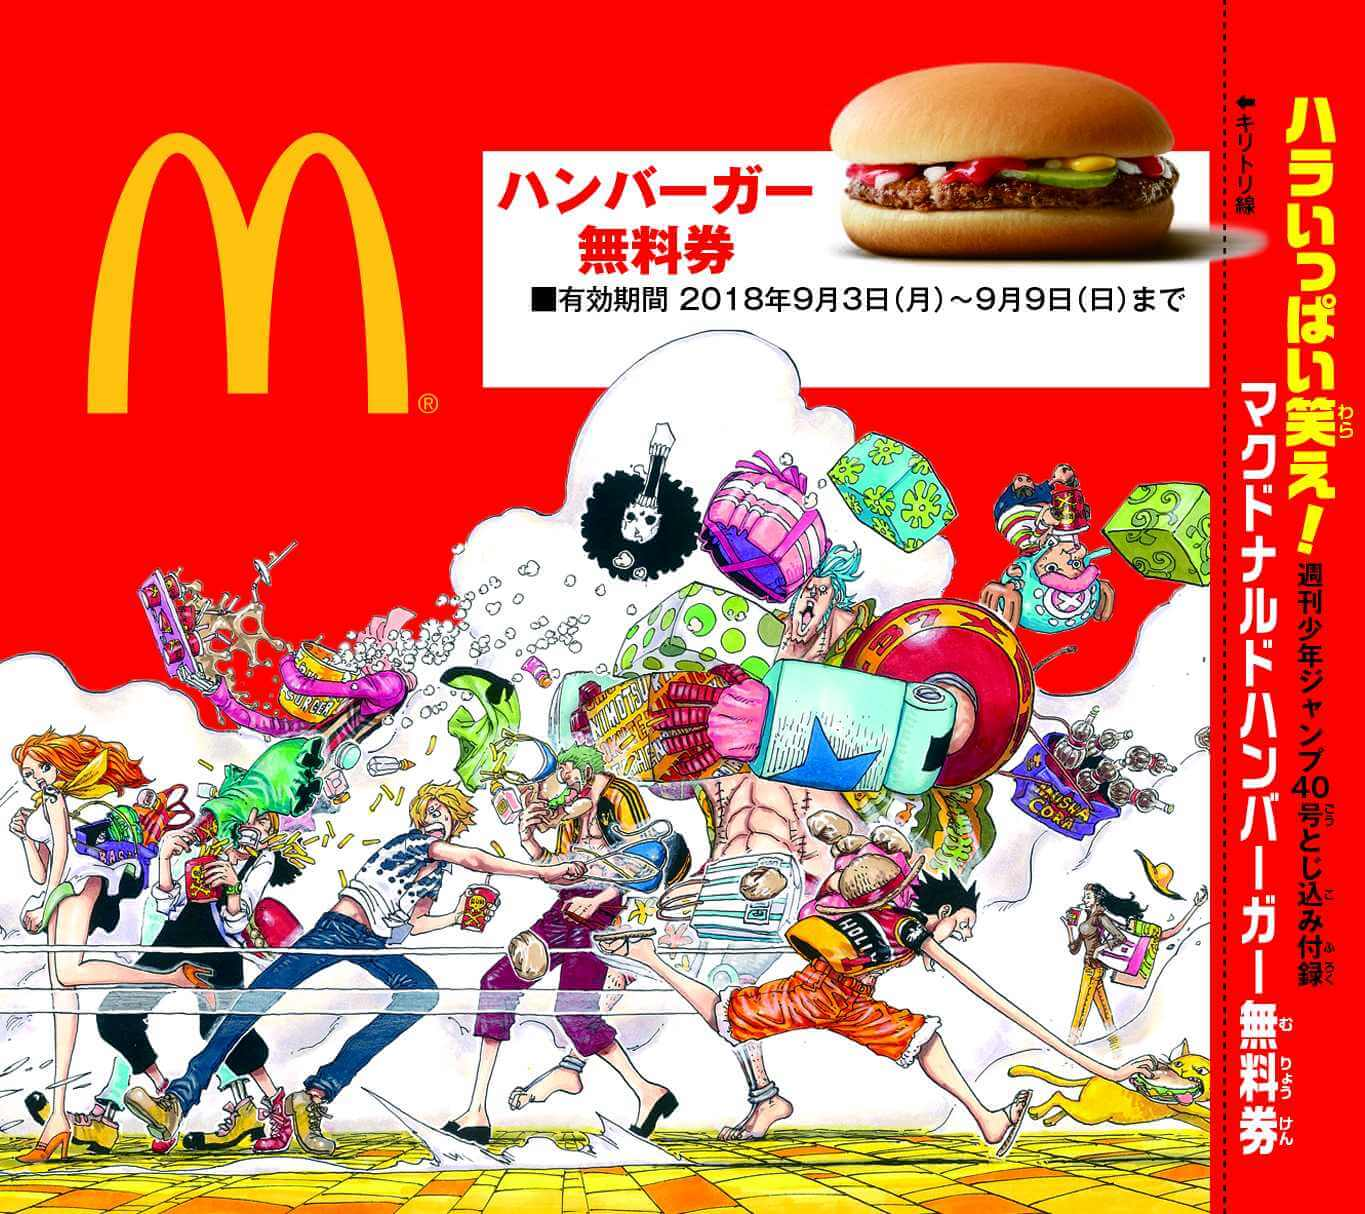 Get a Free Burger at McDonald's in Japan By Purchasing a Copy of